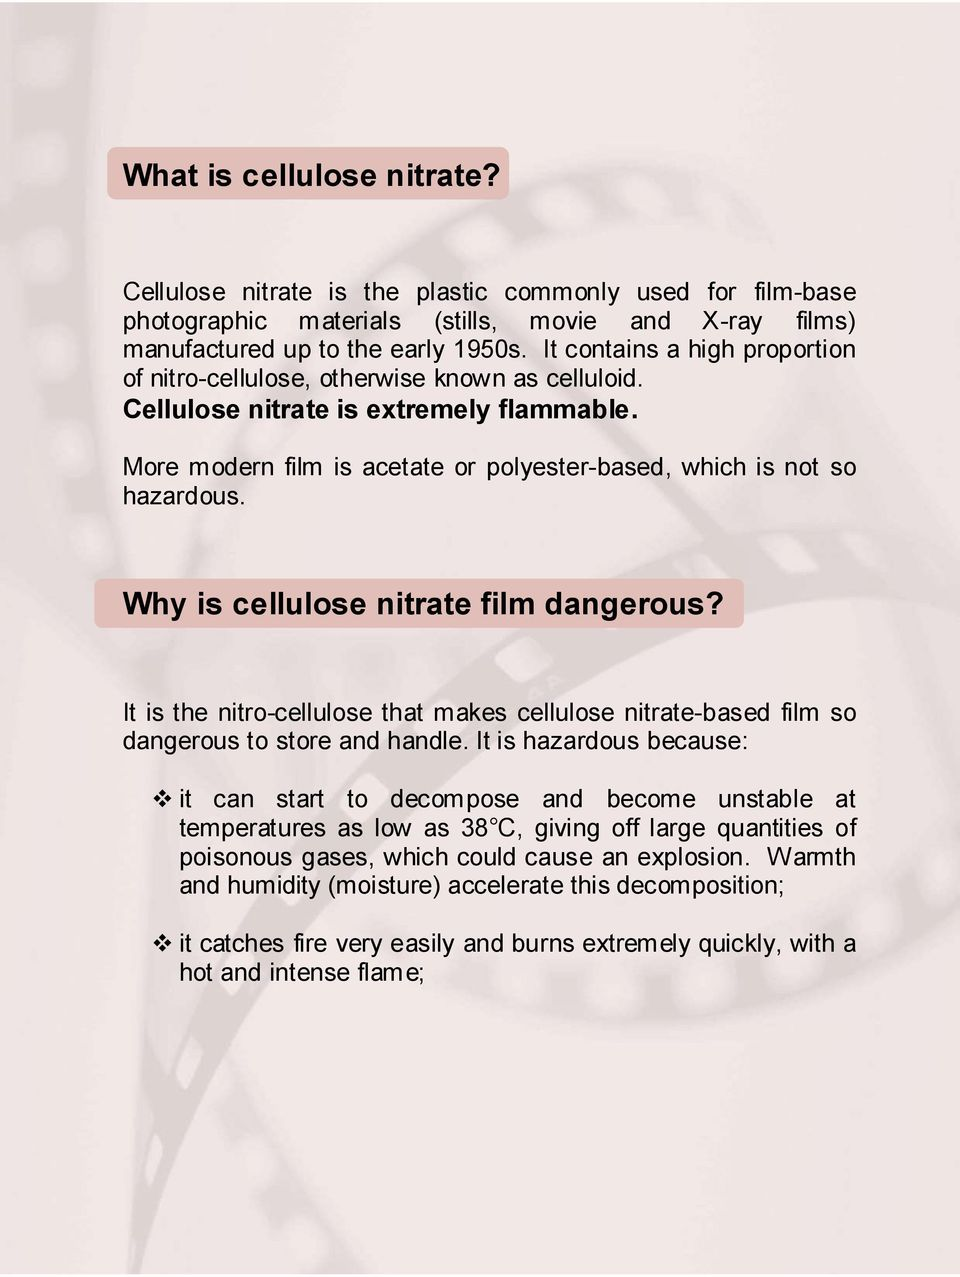 Why is cellulose nitrate film dangerous? It is the nitro-cellulose that makes cellulose nitrate-based film so dangerous to store and handle.